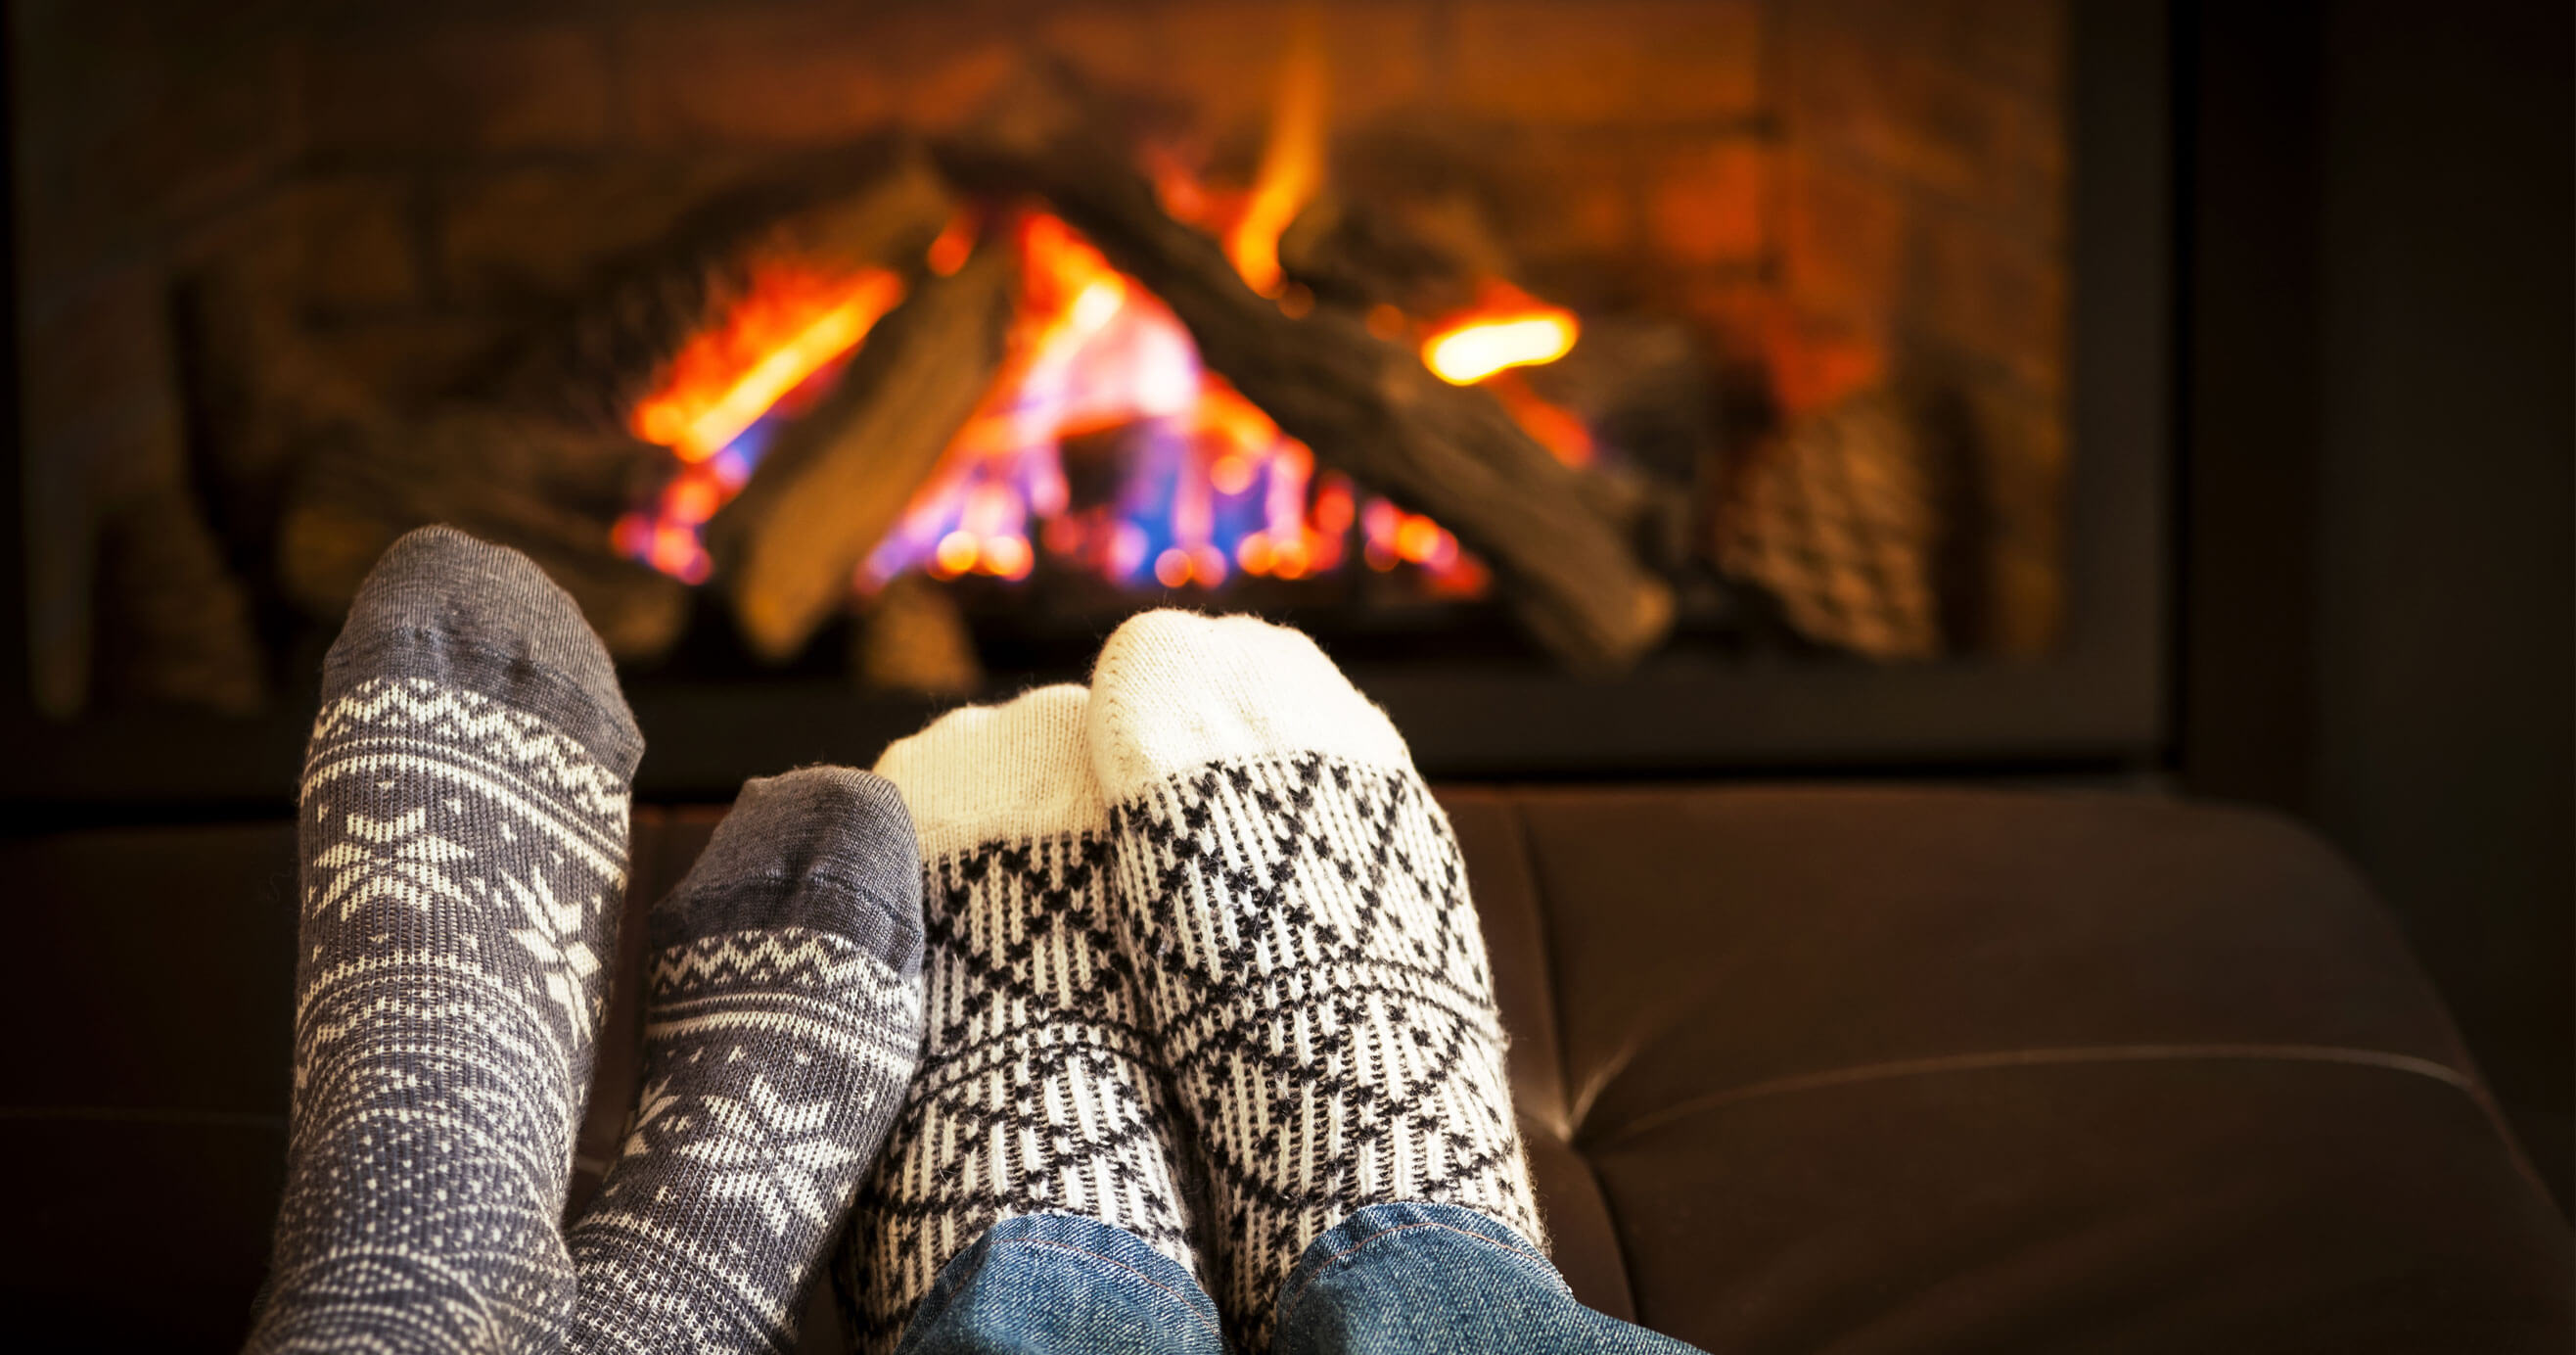 A couple putting their feet up by the warm fire.